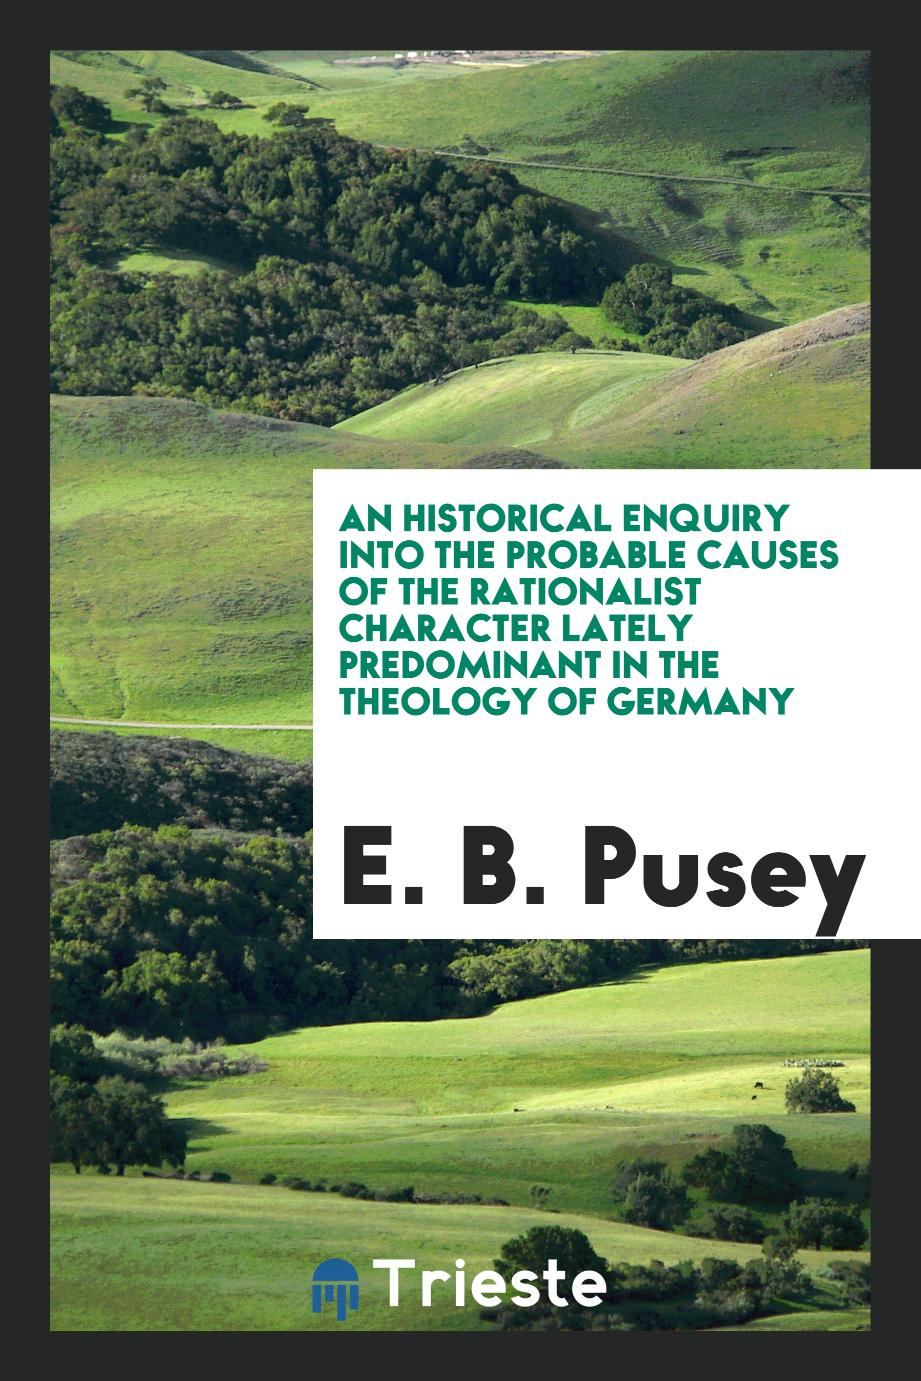 E. B. Pusey - An Historical enquiry into the probable causes of the rationalist character lately predominant in the theology of Germany